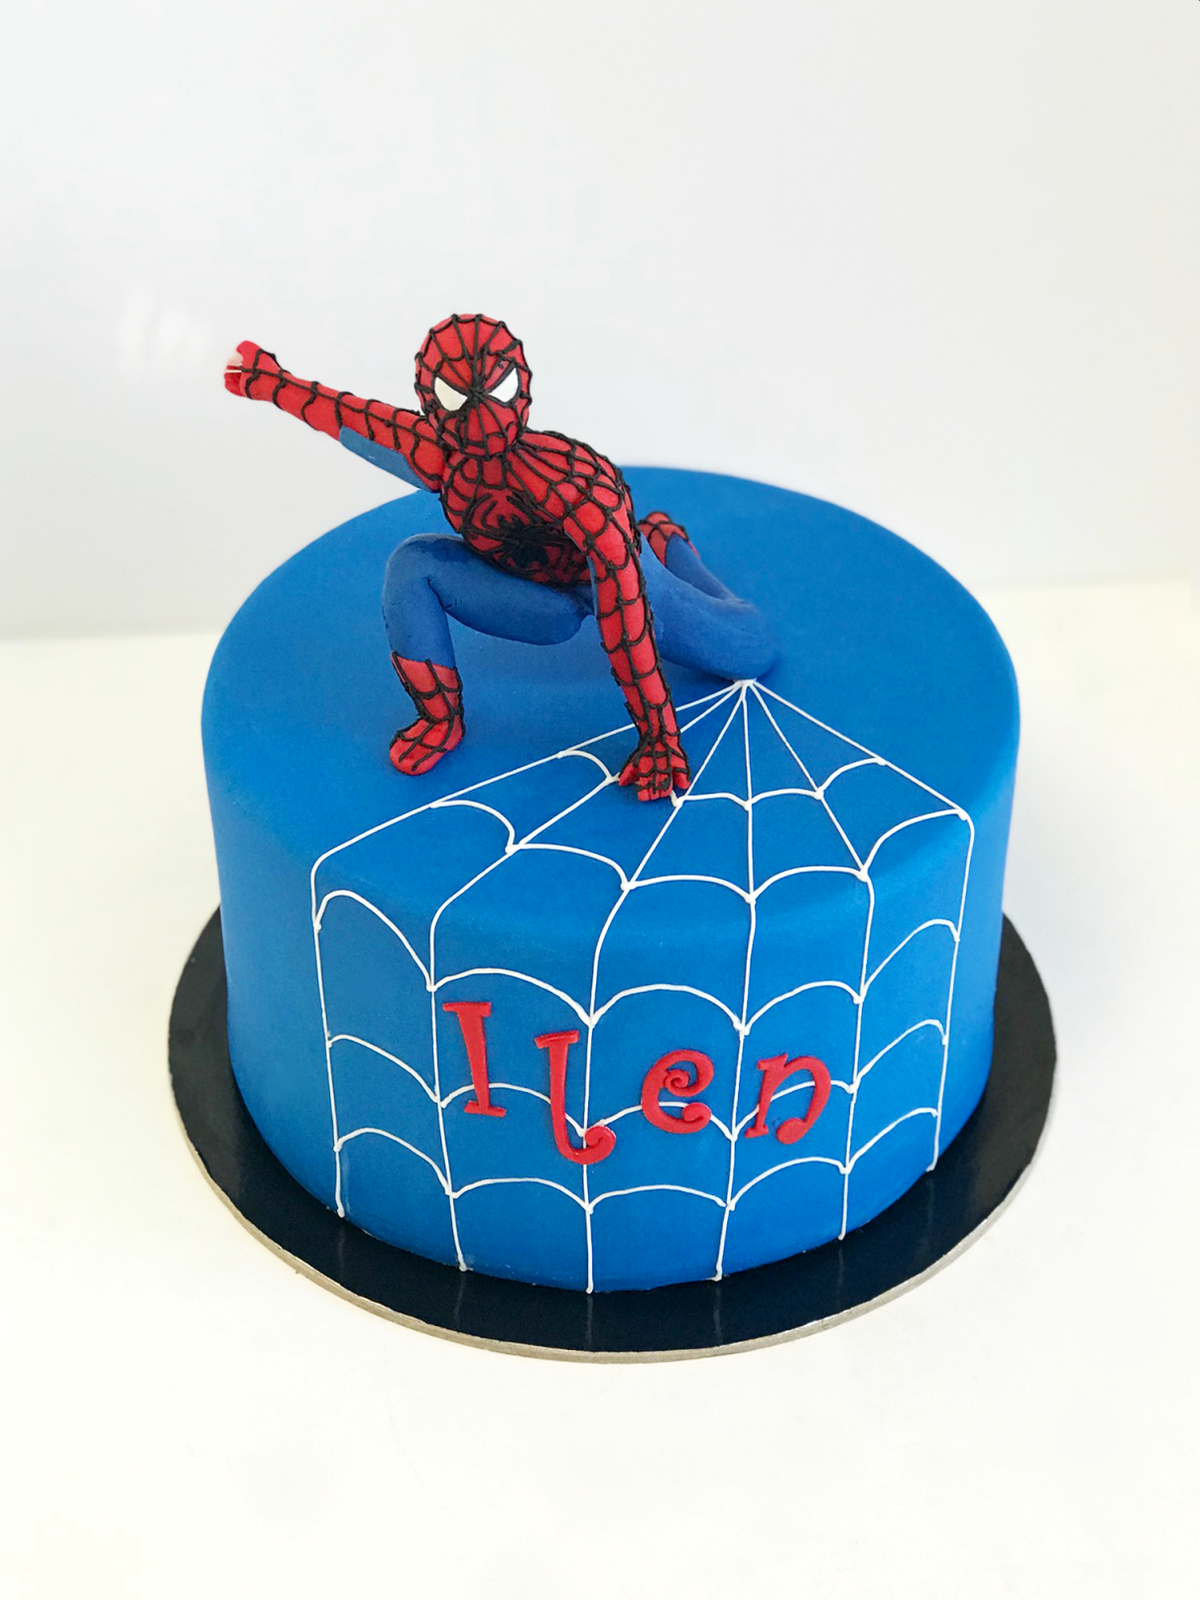 Whippt Spiderman Cake June 2018